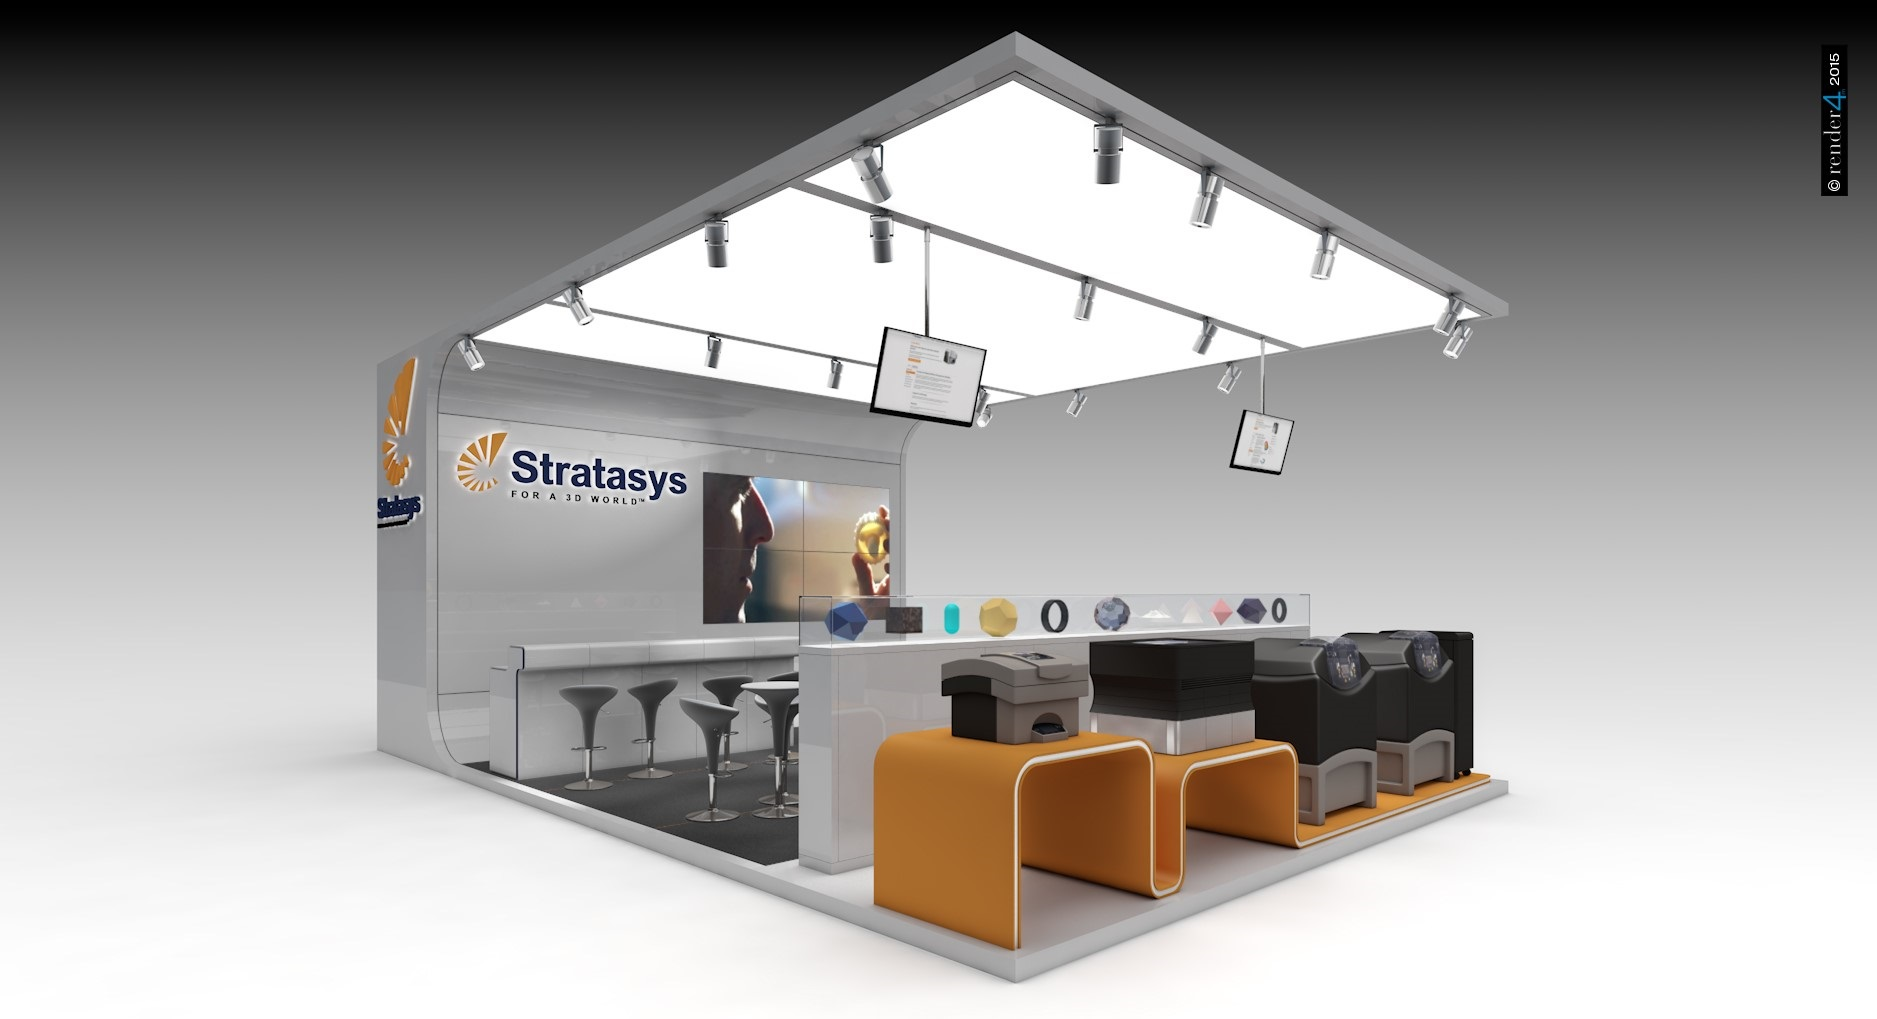 Exhibition booth - Designer booths - Design booth example 1